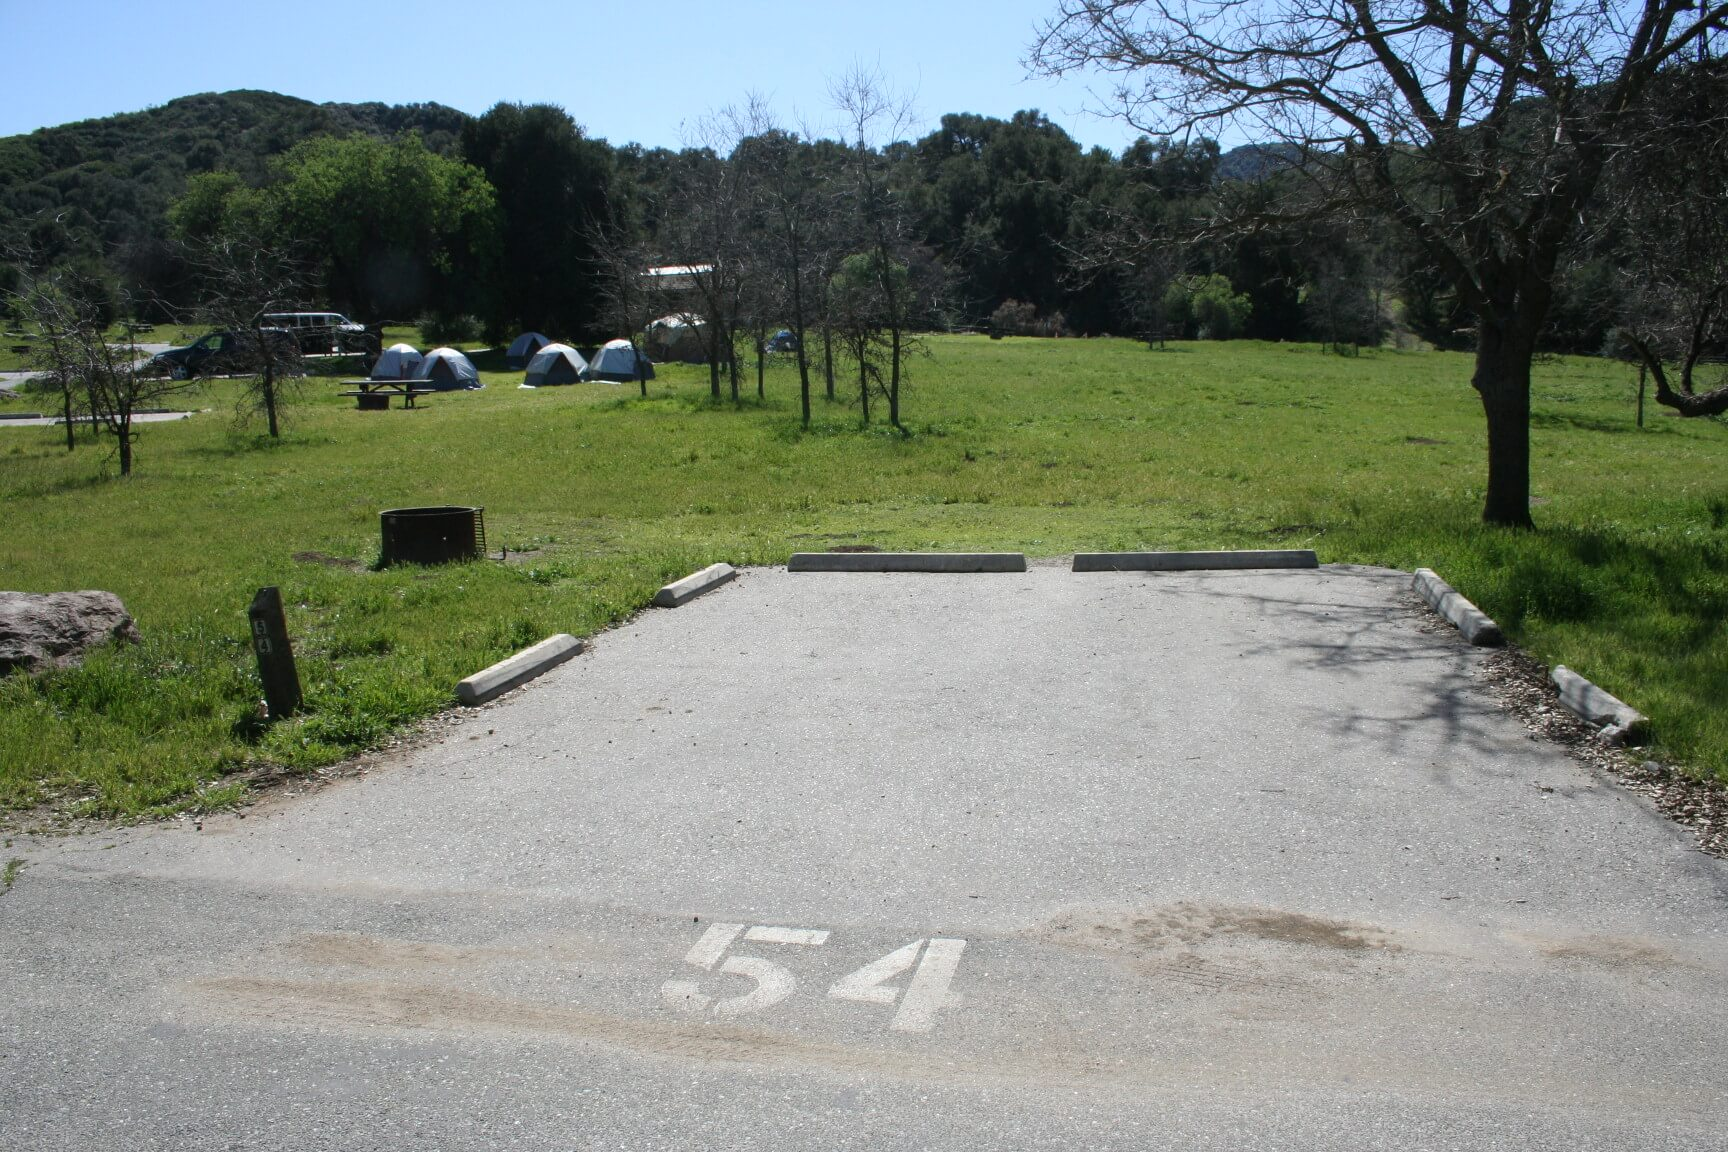 Leo Carrillo & Malibu Creek Campgrounds Are Now Open For Camping - Malibu Site 54 Before Fire